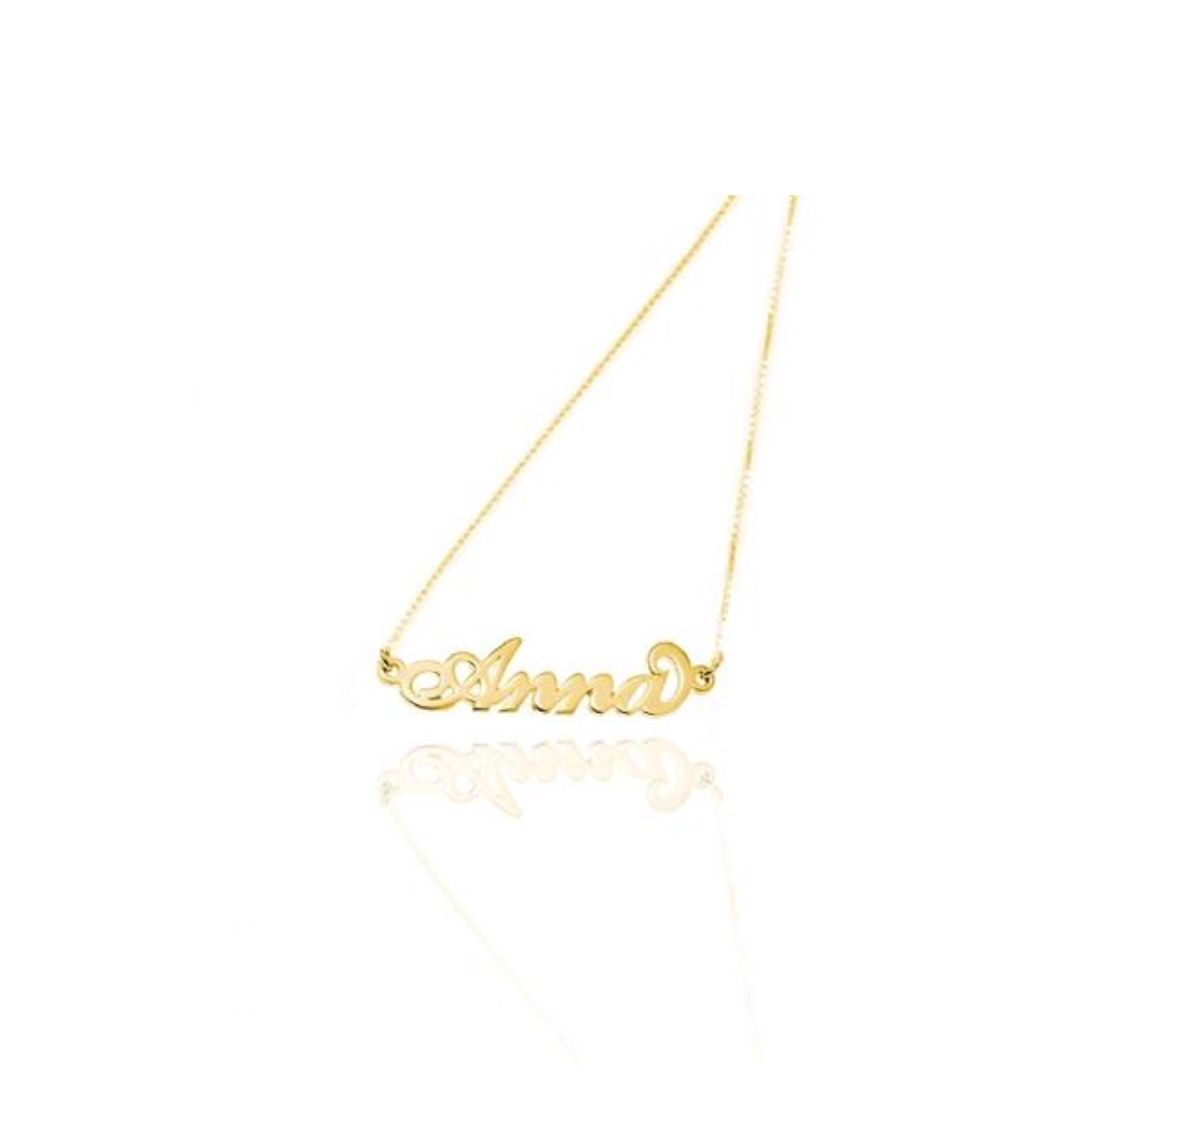 18kt solid gold name necklace